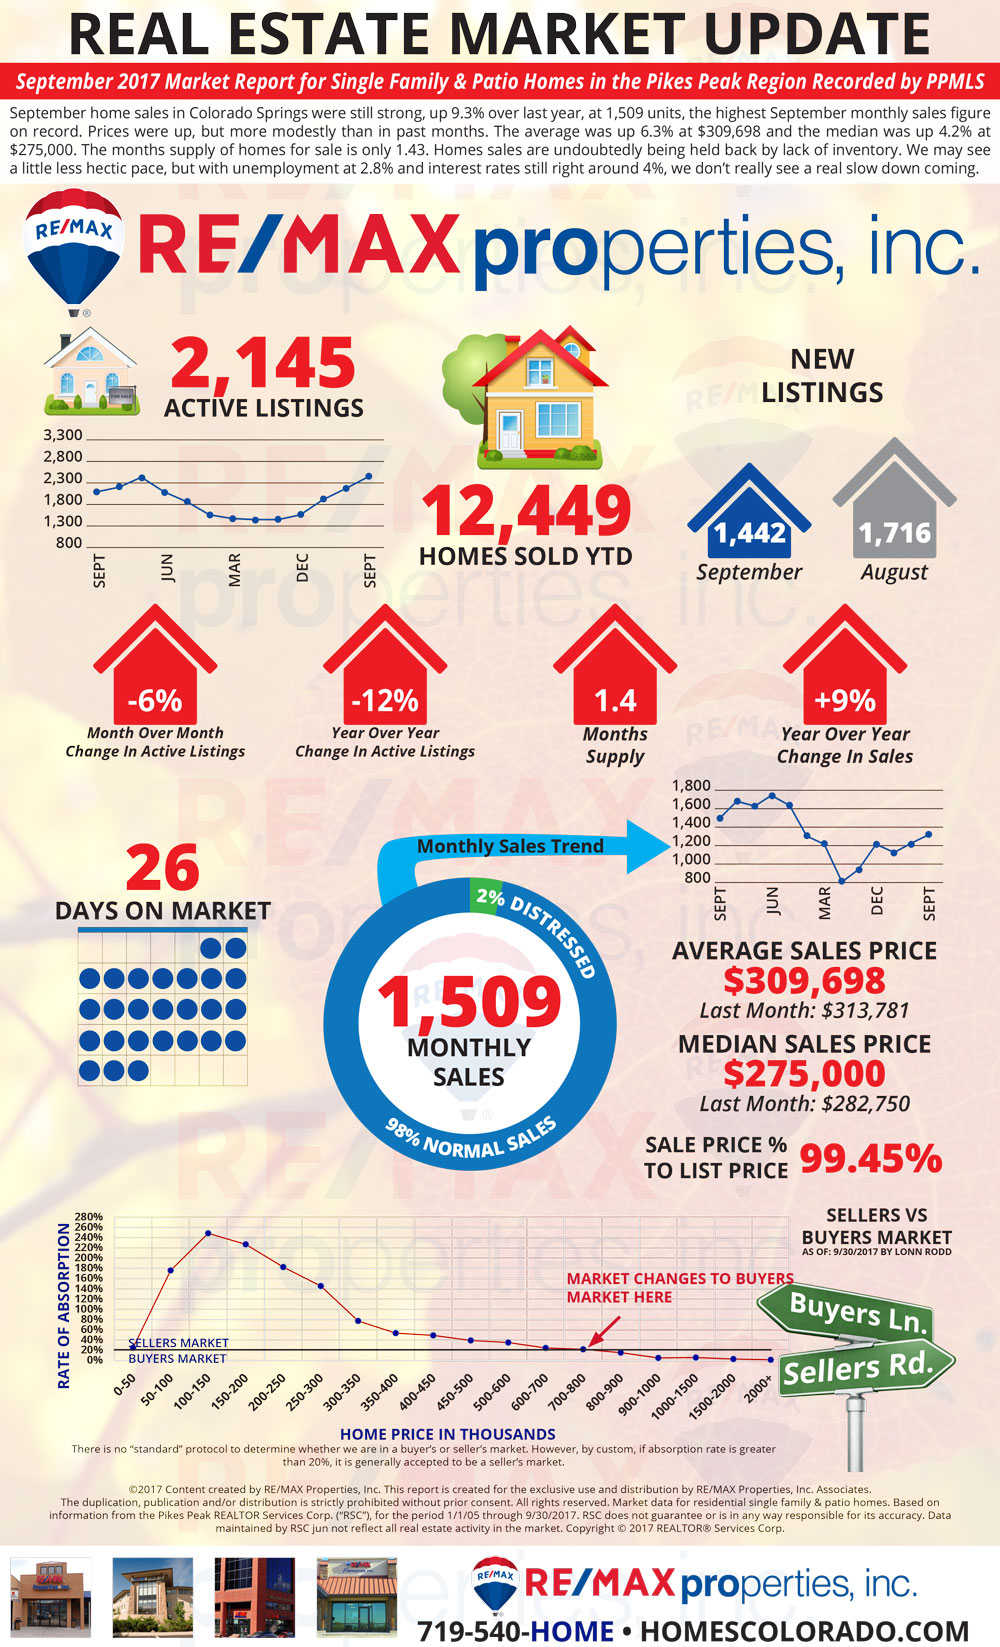 September 2017 Market Update - Colorado Springs Real Estate - RE/MAX Properties, Inc.